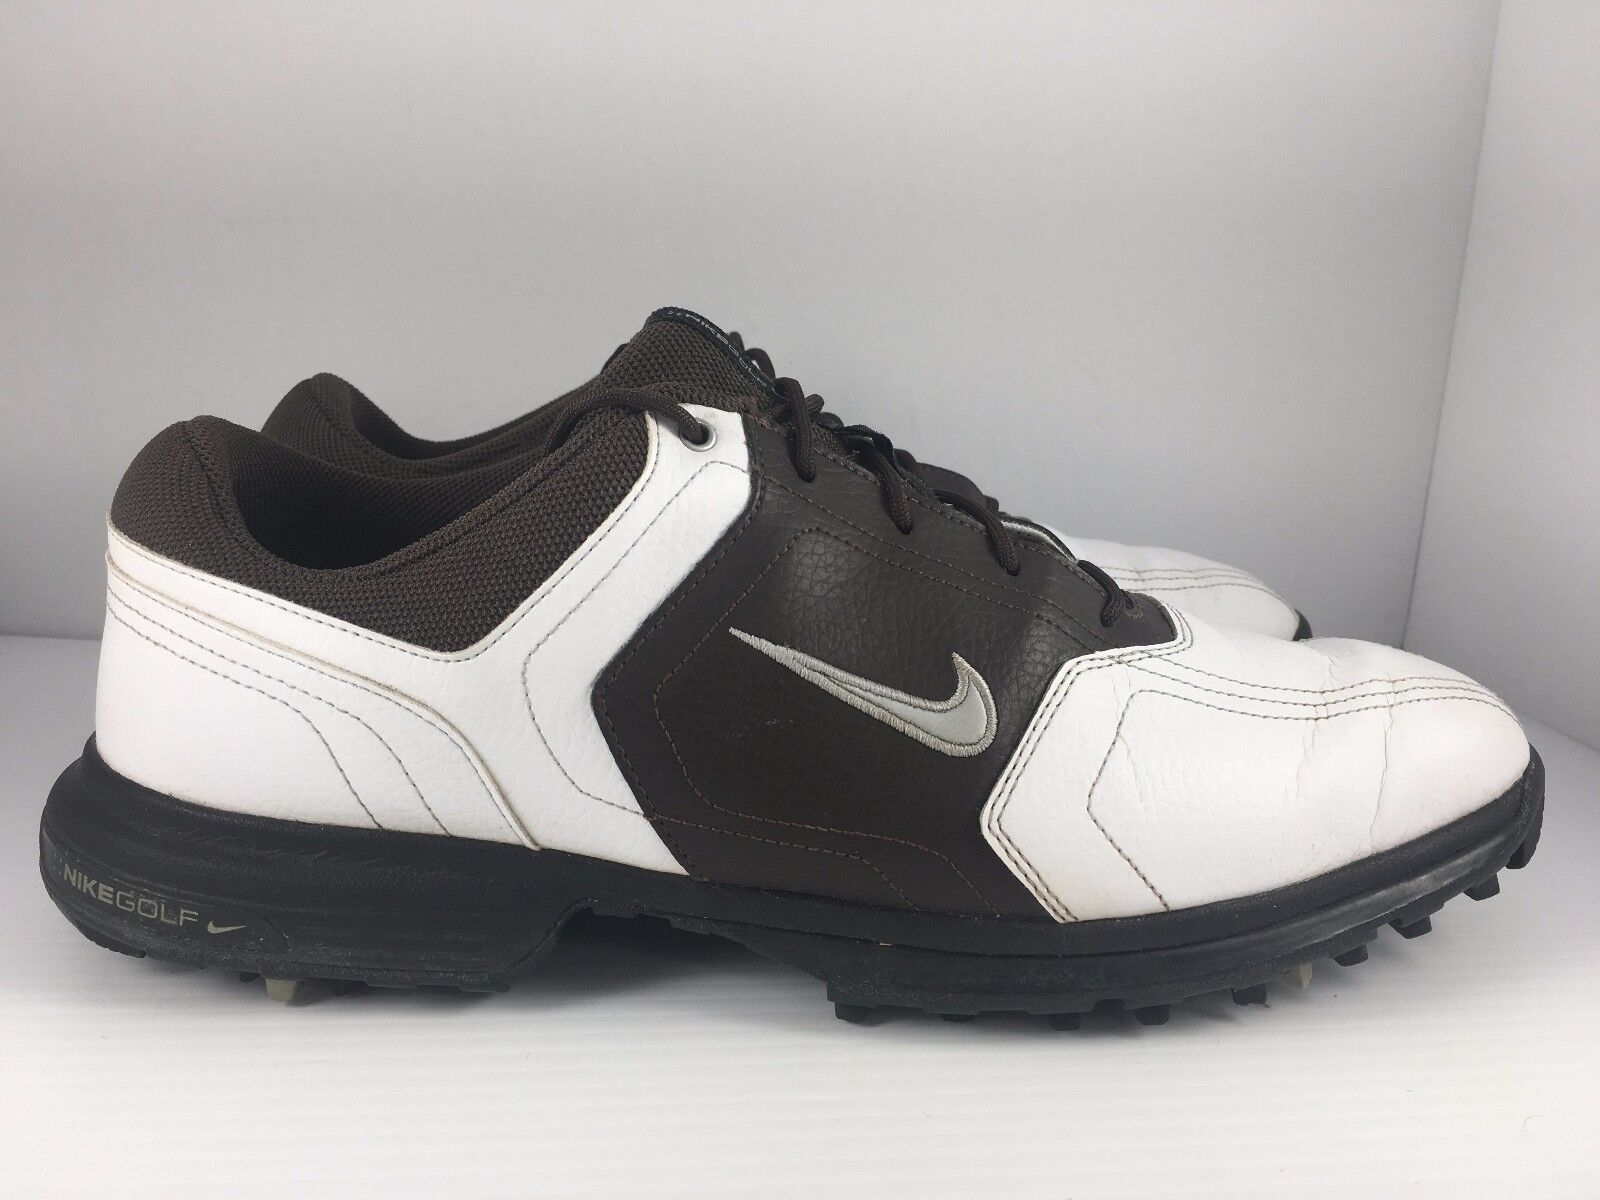 NIKE Golf Men US 10 White + Brown Leather Saddle Golf Cleats 336040-102 Comfortable and good-looking